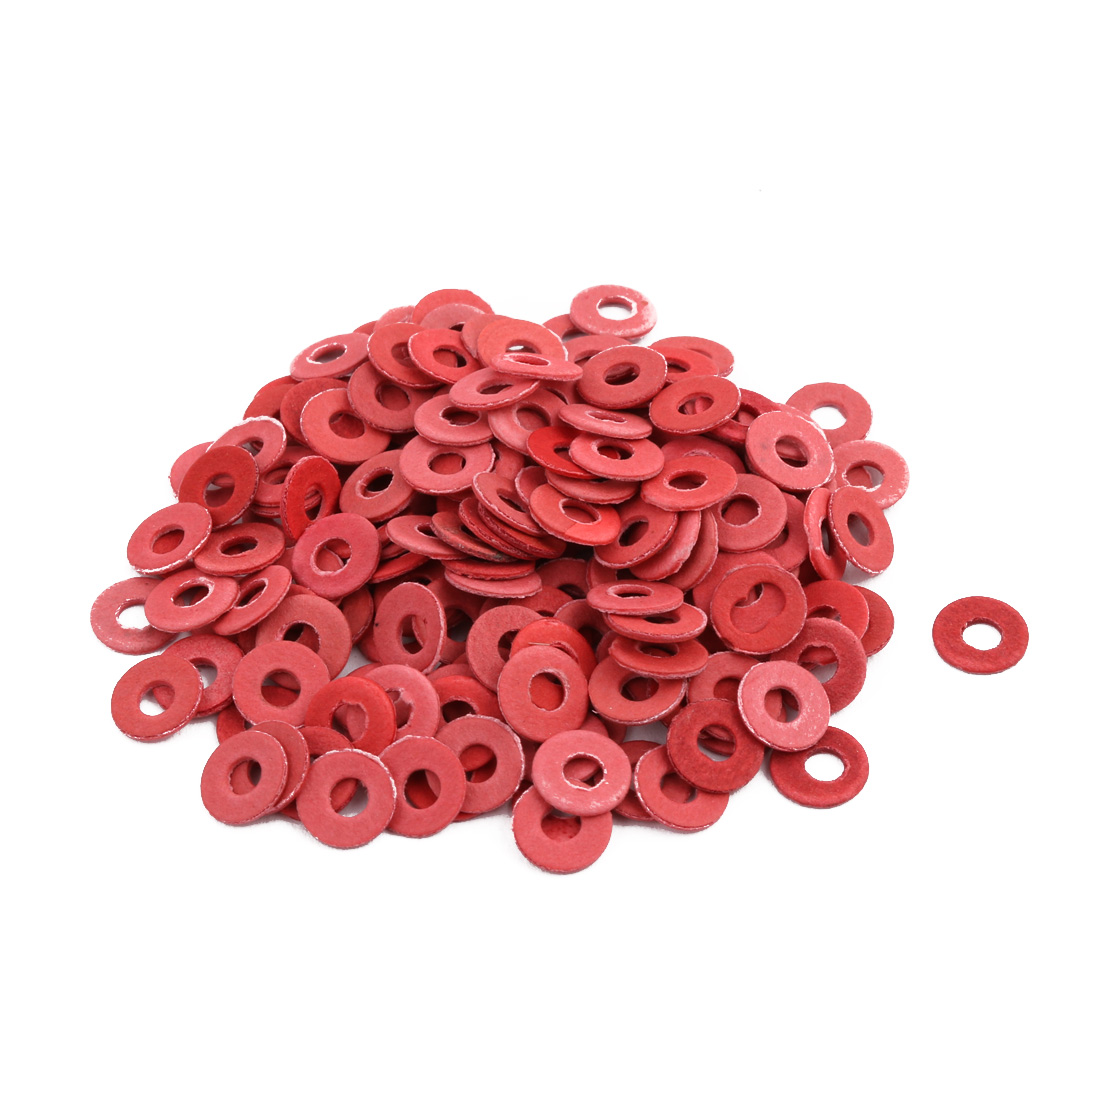 M3 x 8mm x 1mm Nylon Flat Insulating Washers Gaskets Spacers Fastener 190PCS